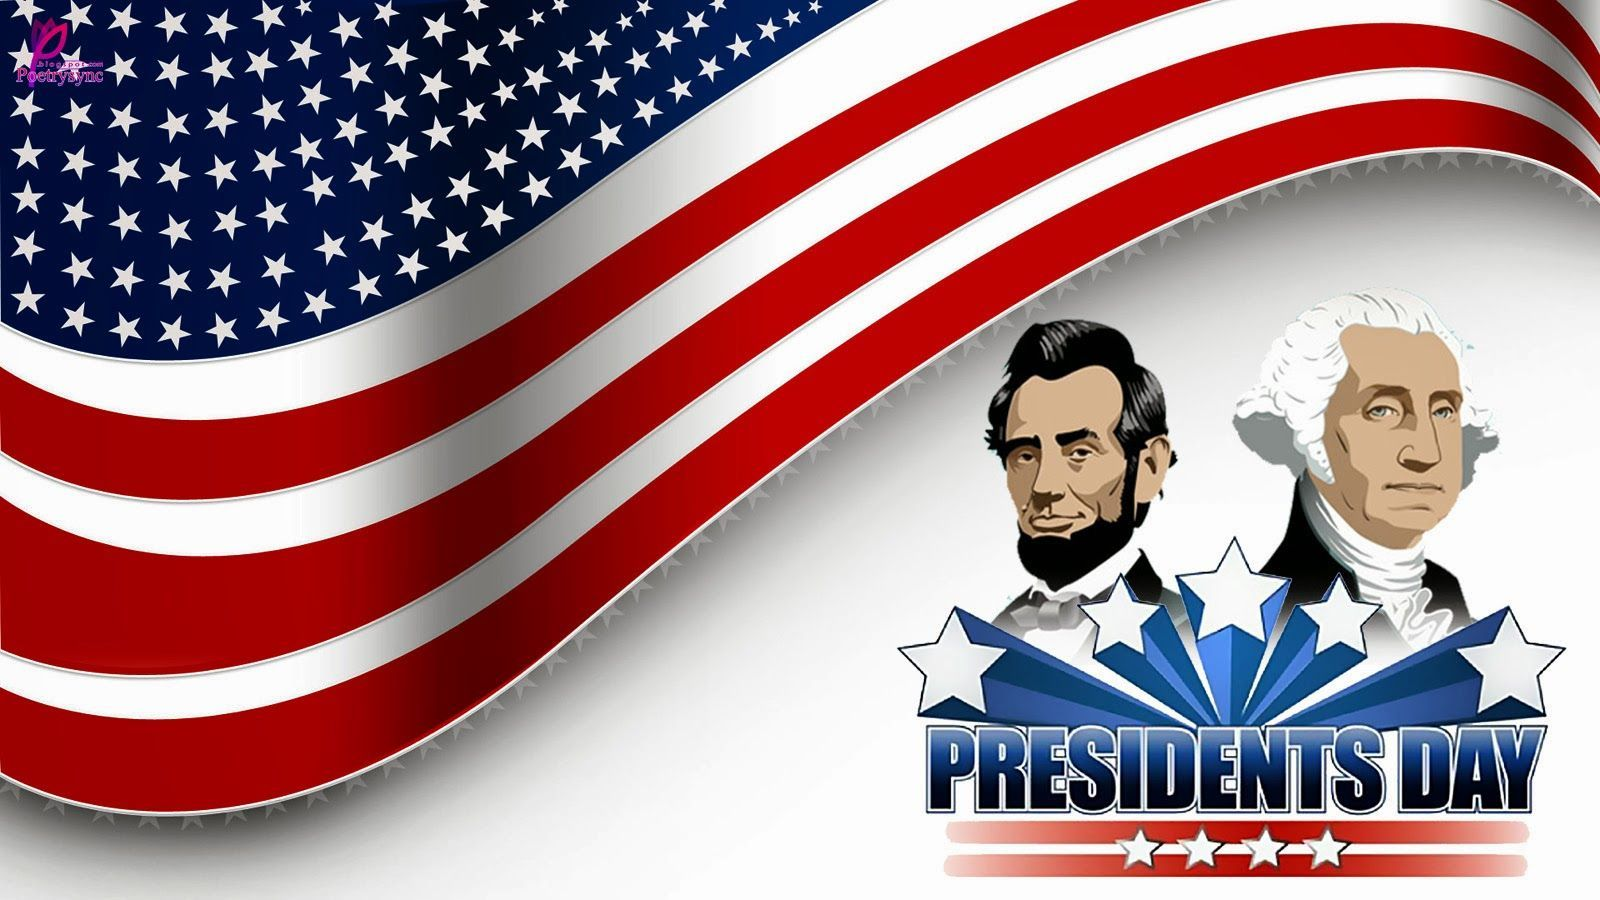 Presidents Day Pictures Photos And Images For Facebook